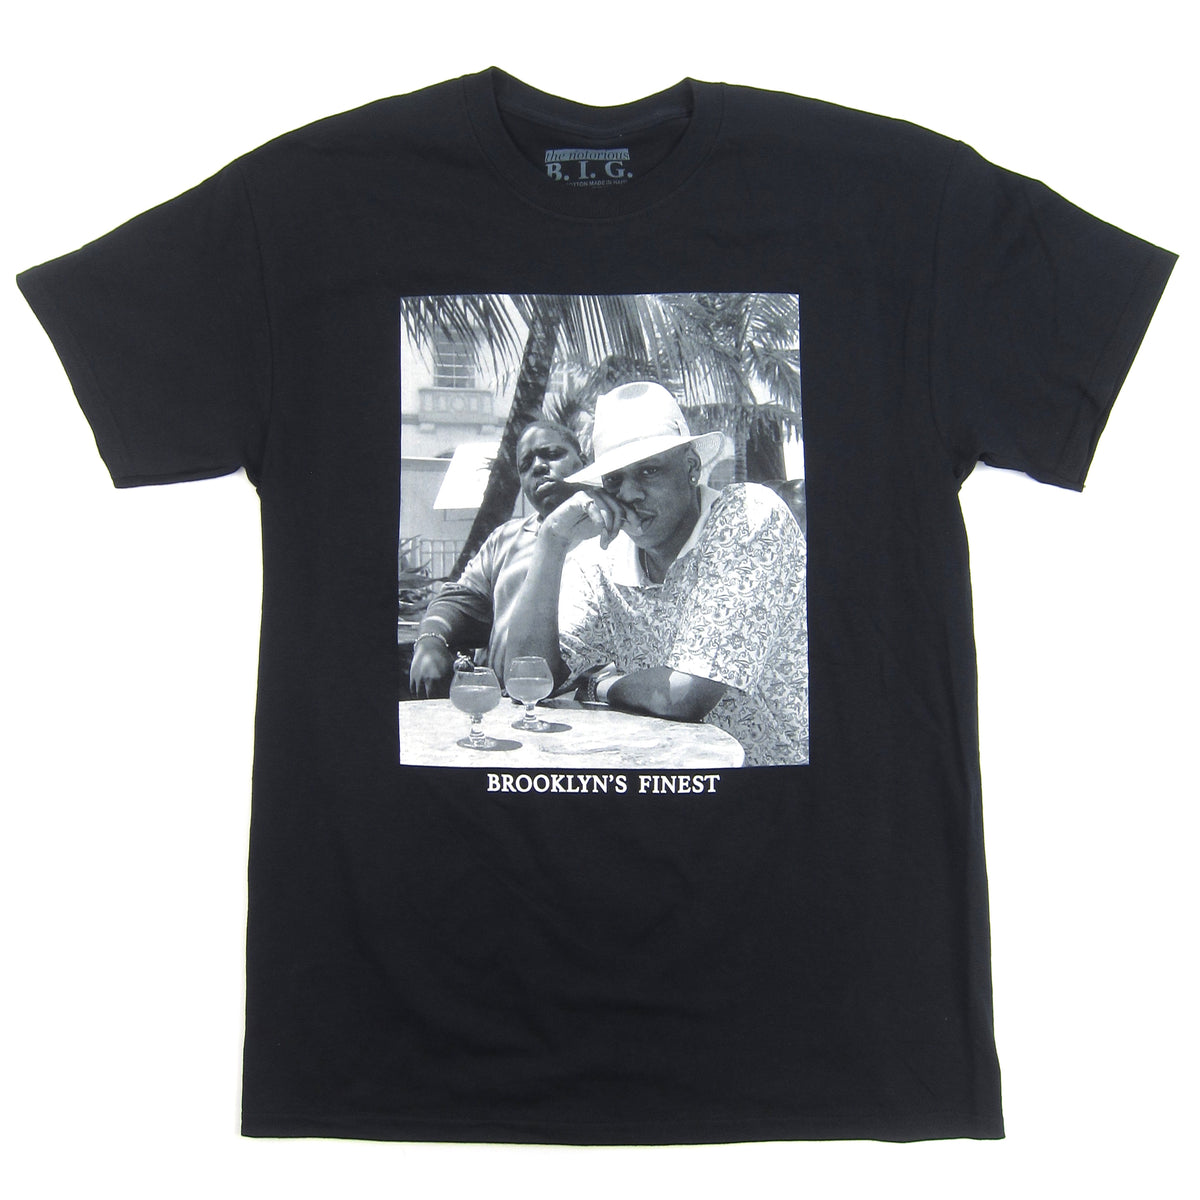 Jay-Z & Notorious B.I.G.: Brooklyn's Finest Shirt - Black